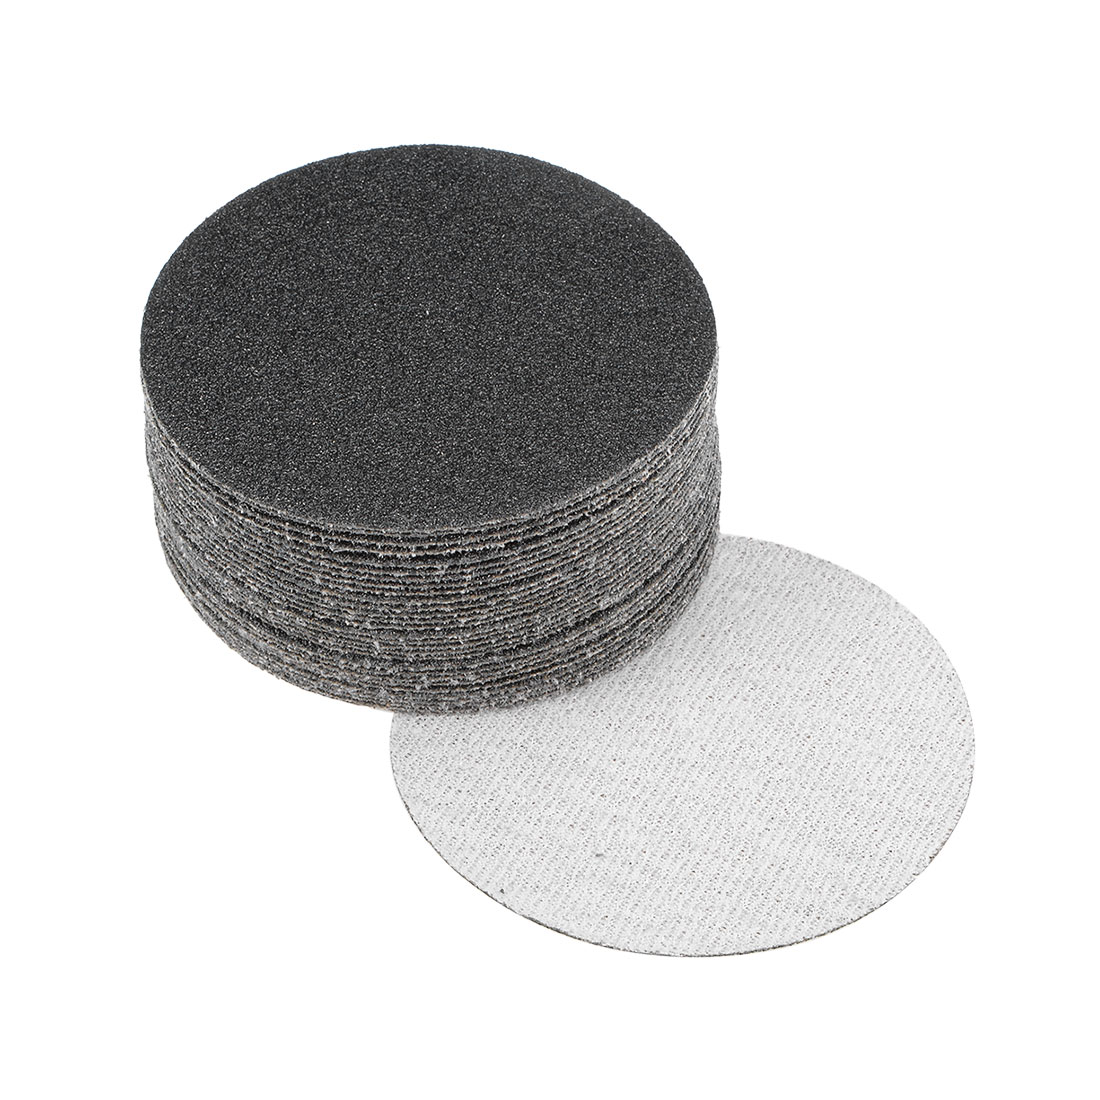 3 inch Wet Dry Discs 60 Grit Hook and Loop Sanding Disc Silicon Carbide 30pcs